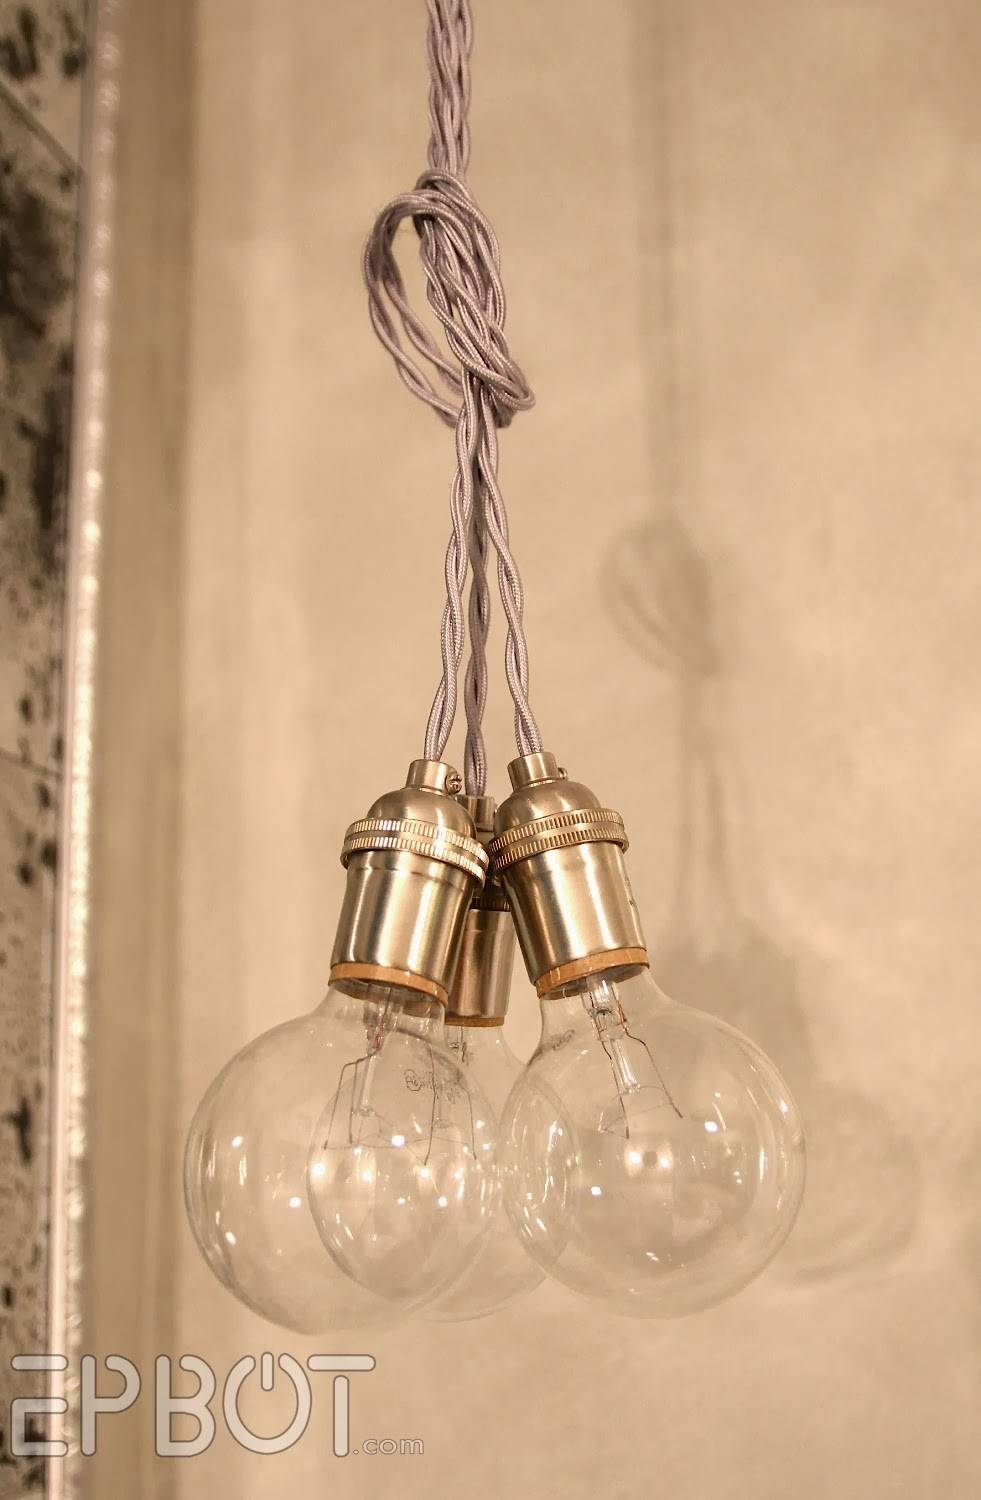 Epbot: Wire Your Own Pendant Lighting - Cheap, Easy, & Fun! intended for Fancy Rope Pendant Lights (Image 6 of 15)